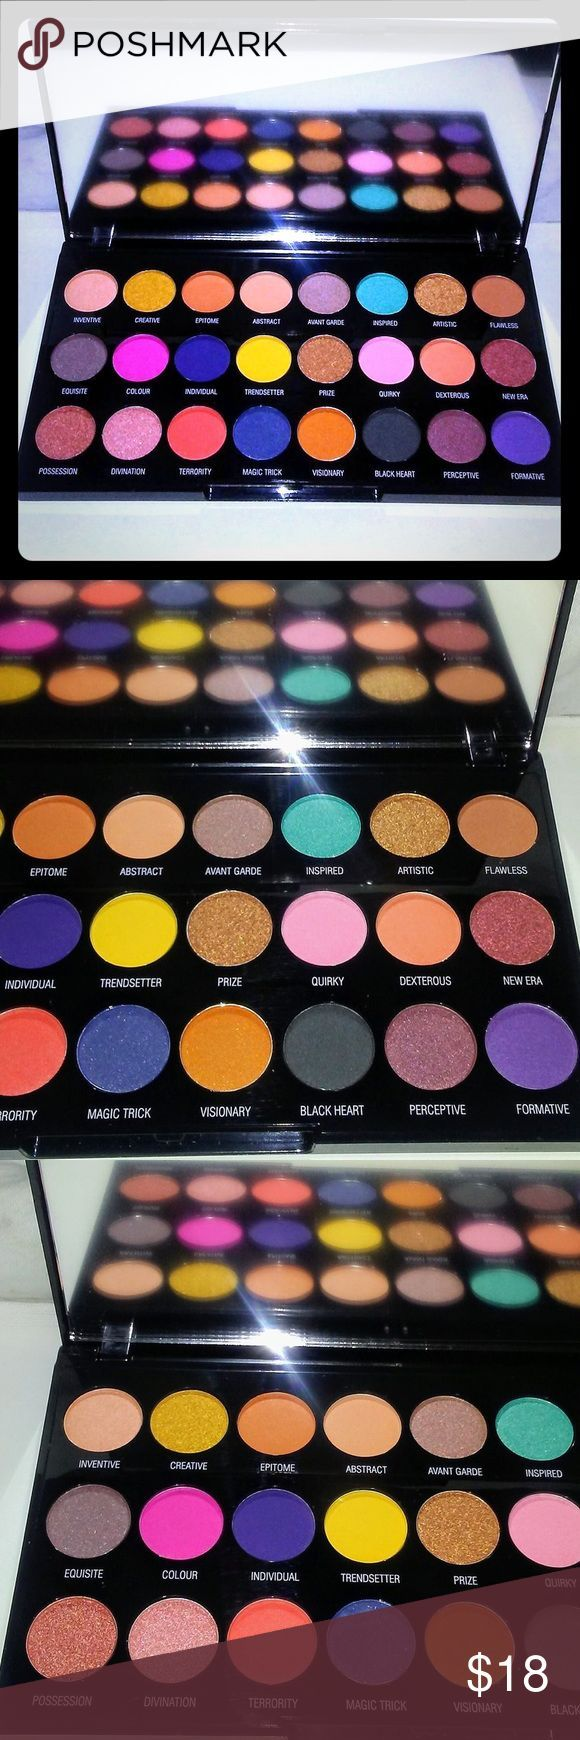 Makeup Revolution Creative Eyeshadow Palette This Is A Brand New